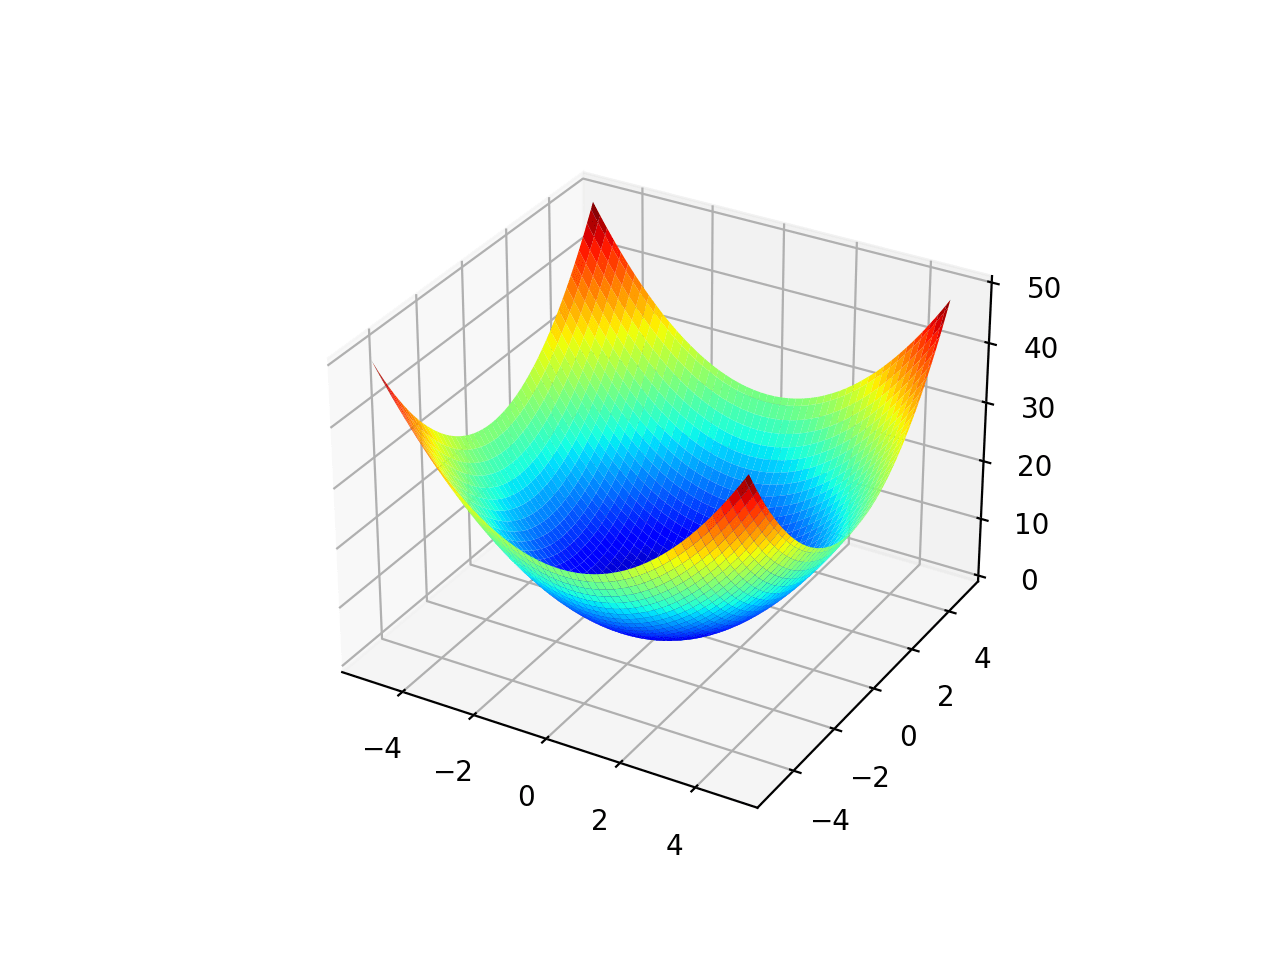 Surface Plot of a Two-Dimensional Objective Function